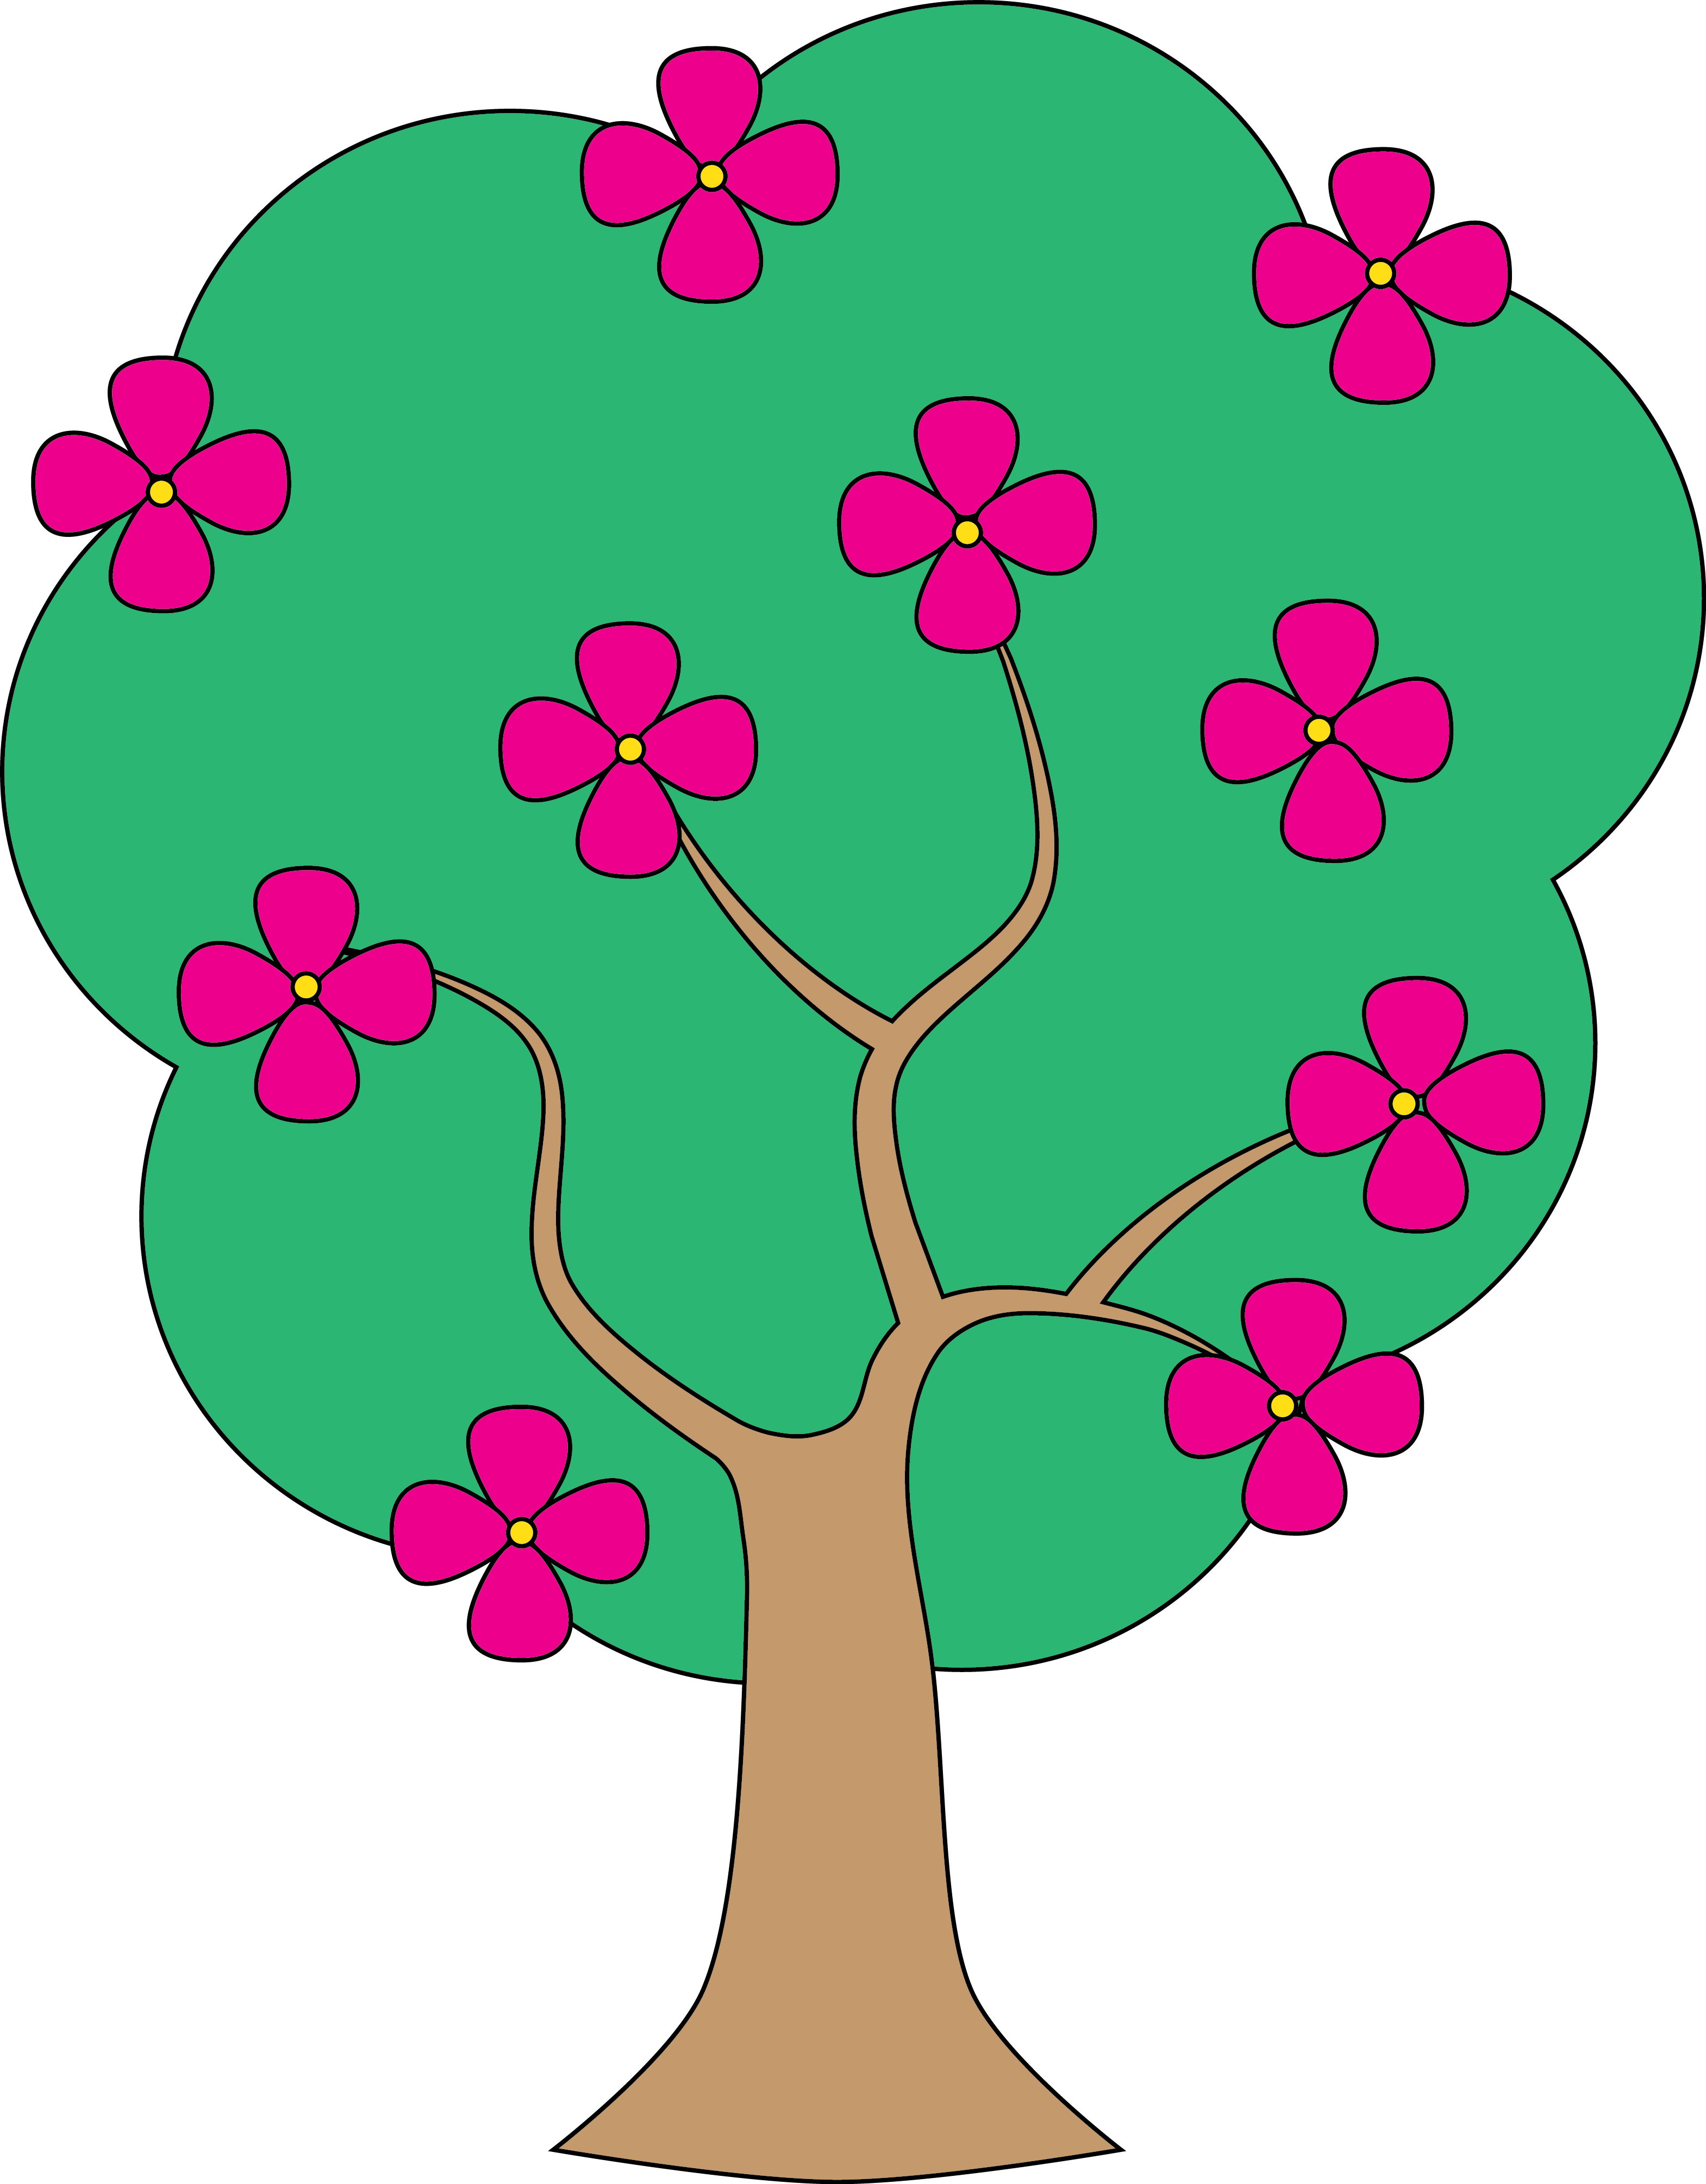 Blossom clipart bloom Clipart Cliparts Flower Blossom Cliparts